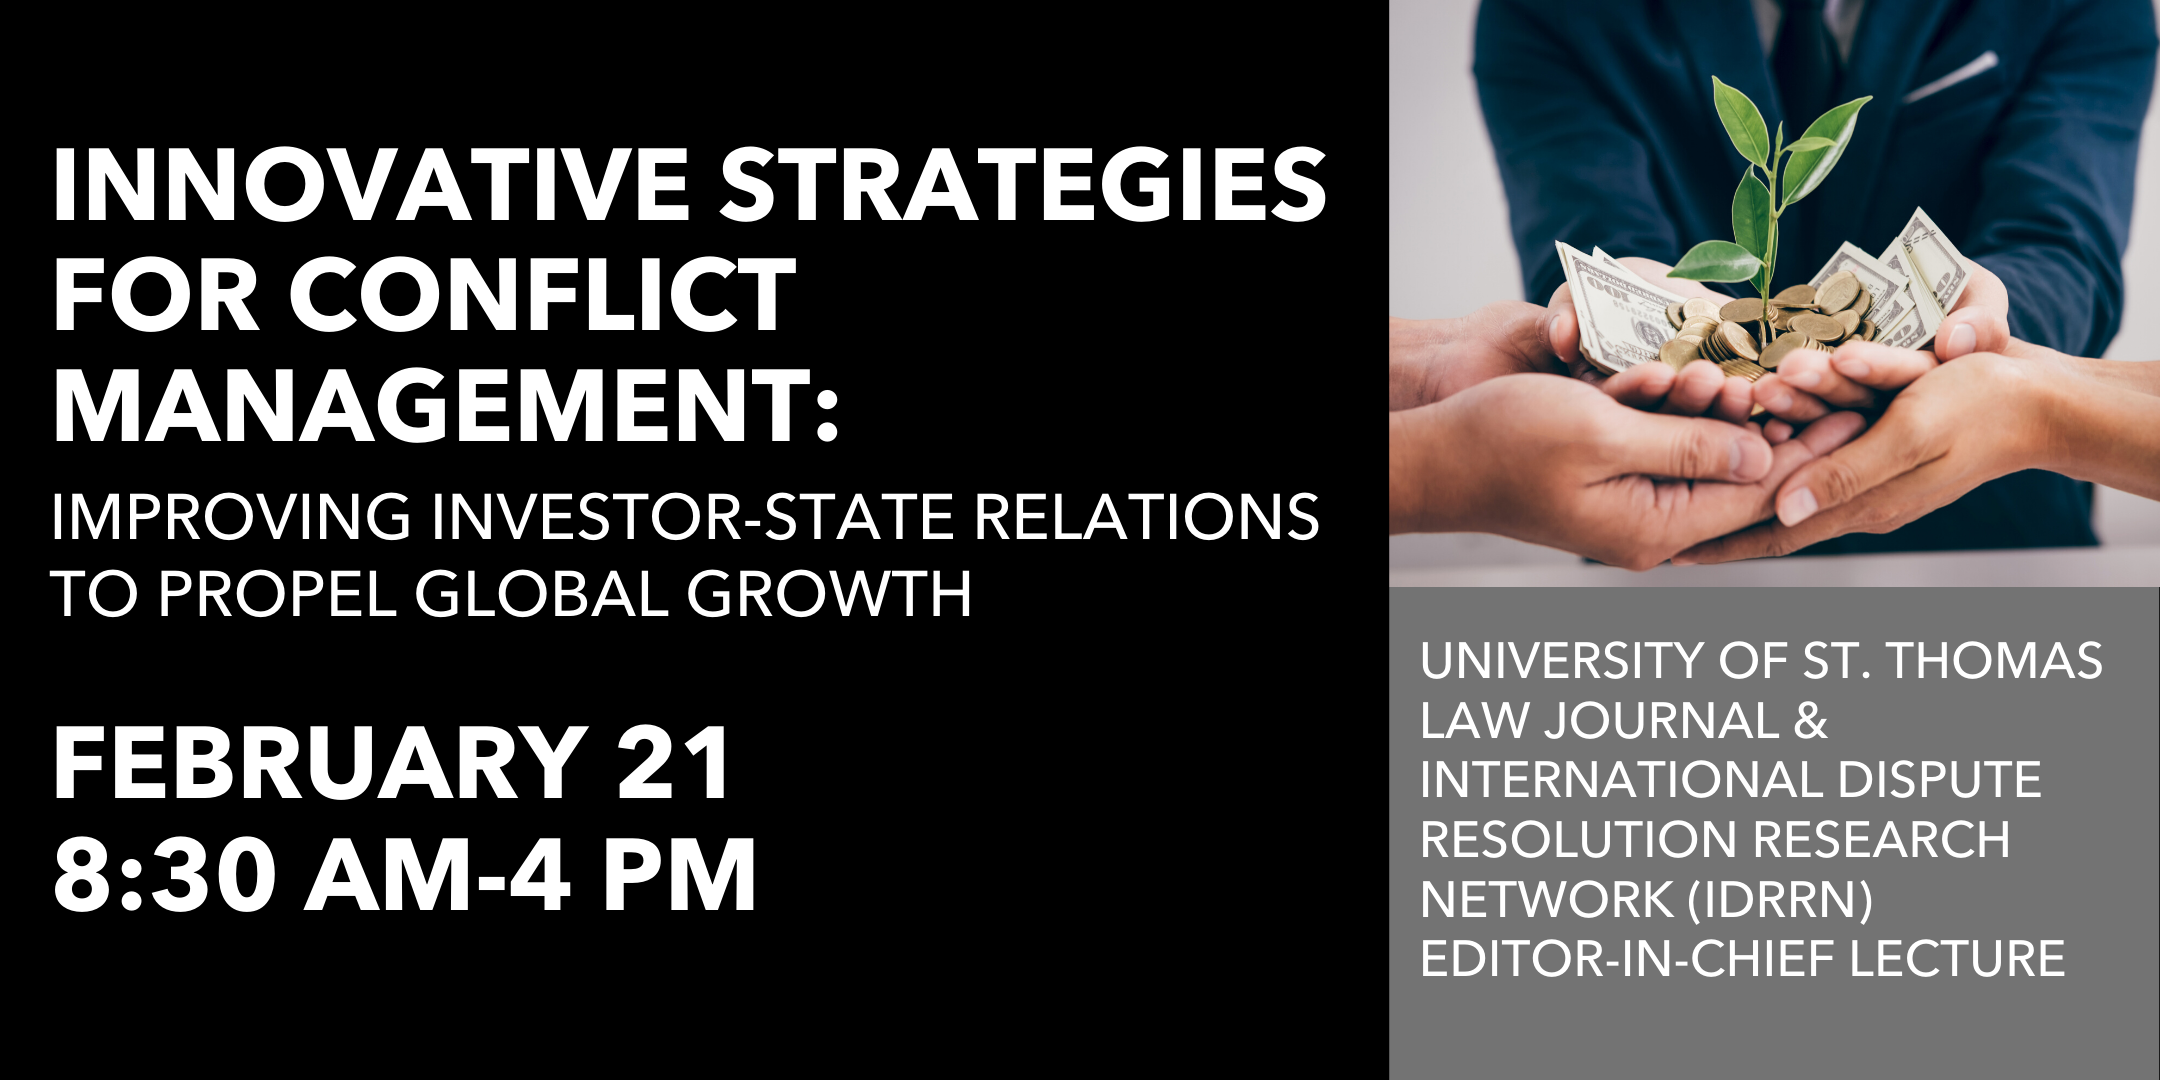 UST Law Journal EIC Lecture: Innovative Strategies for Conflict Management